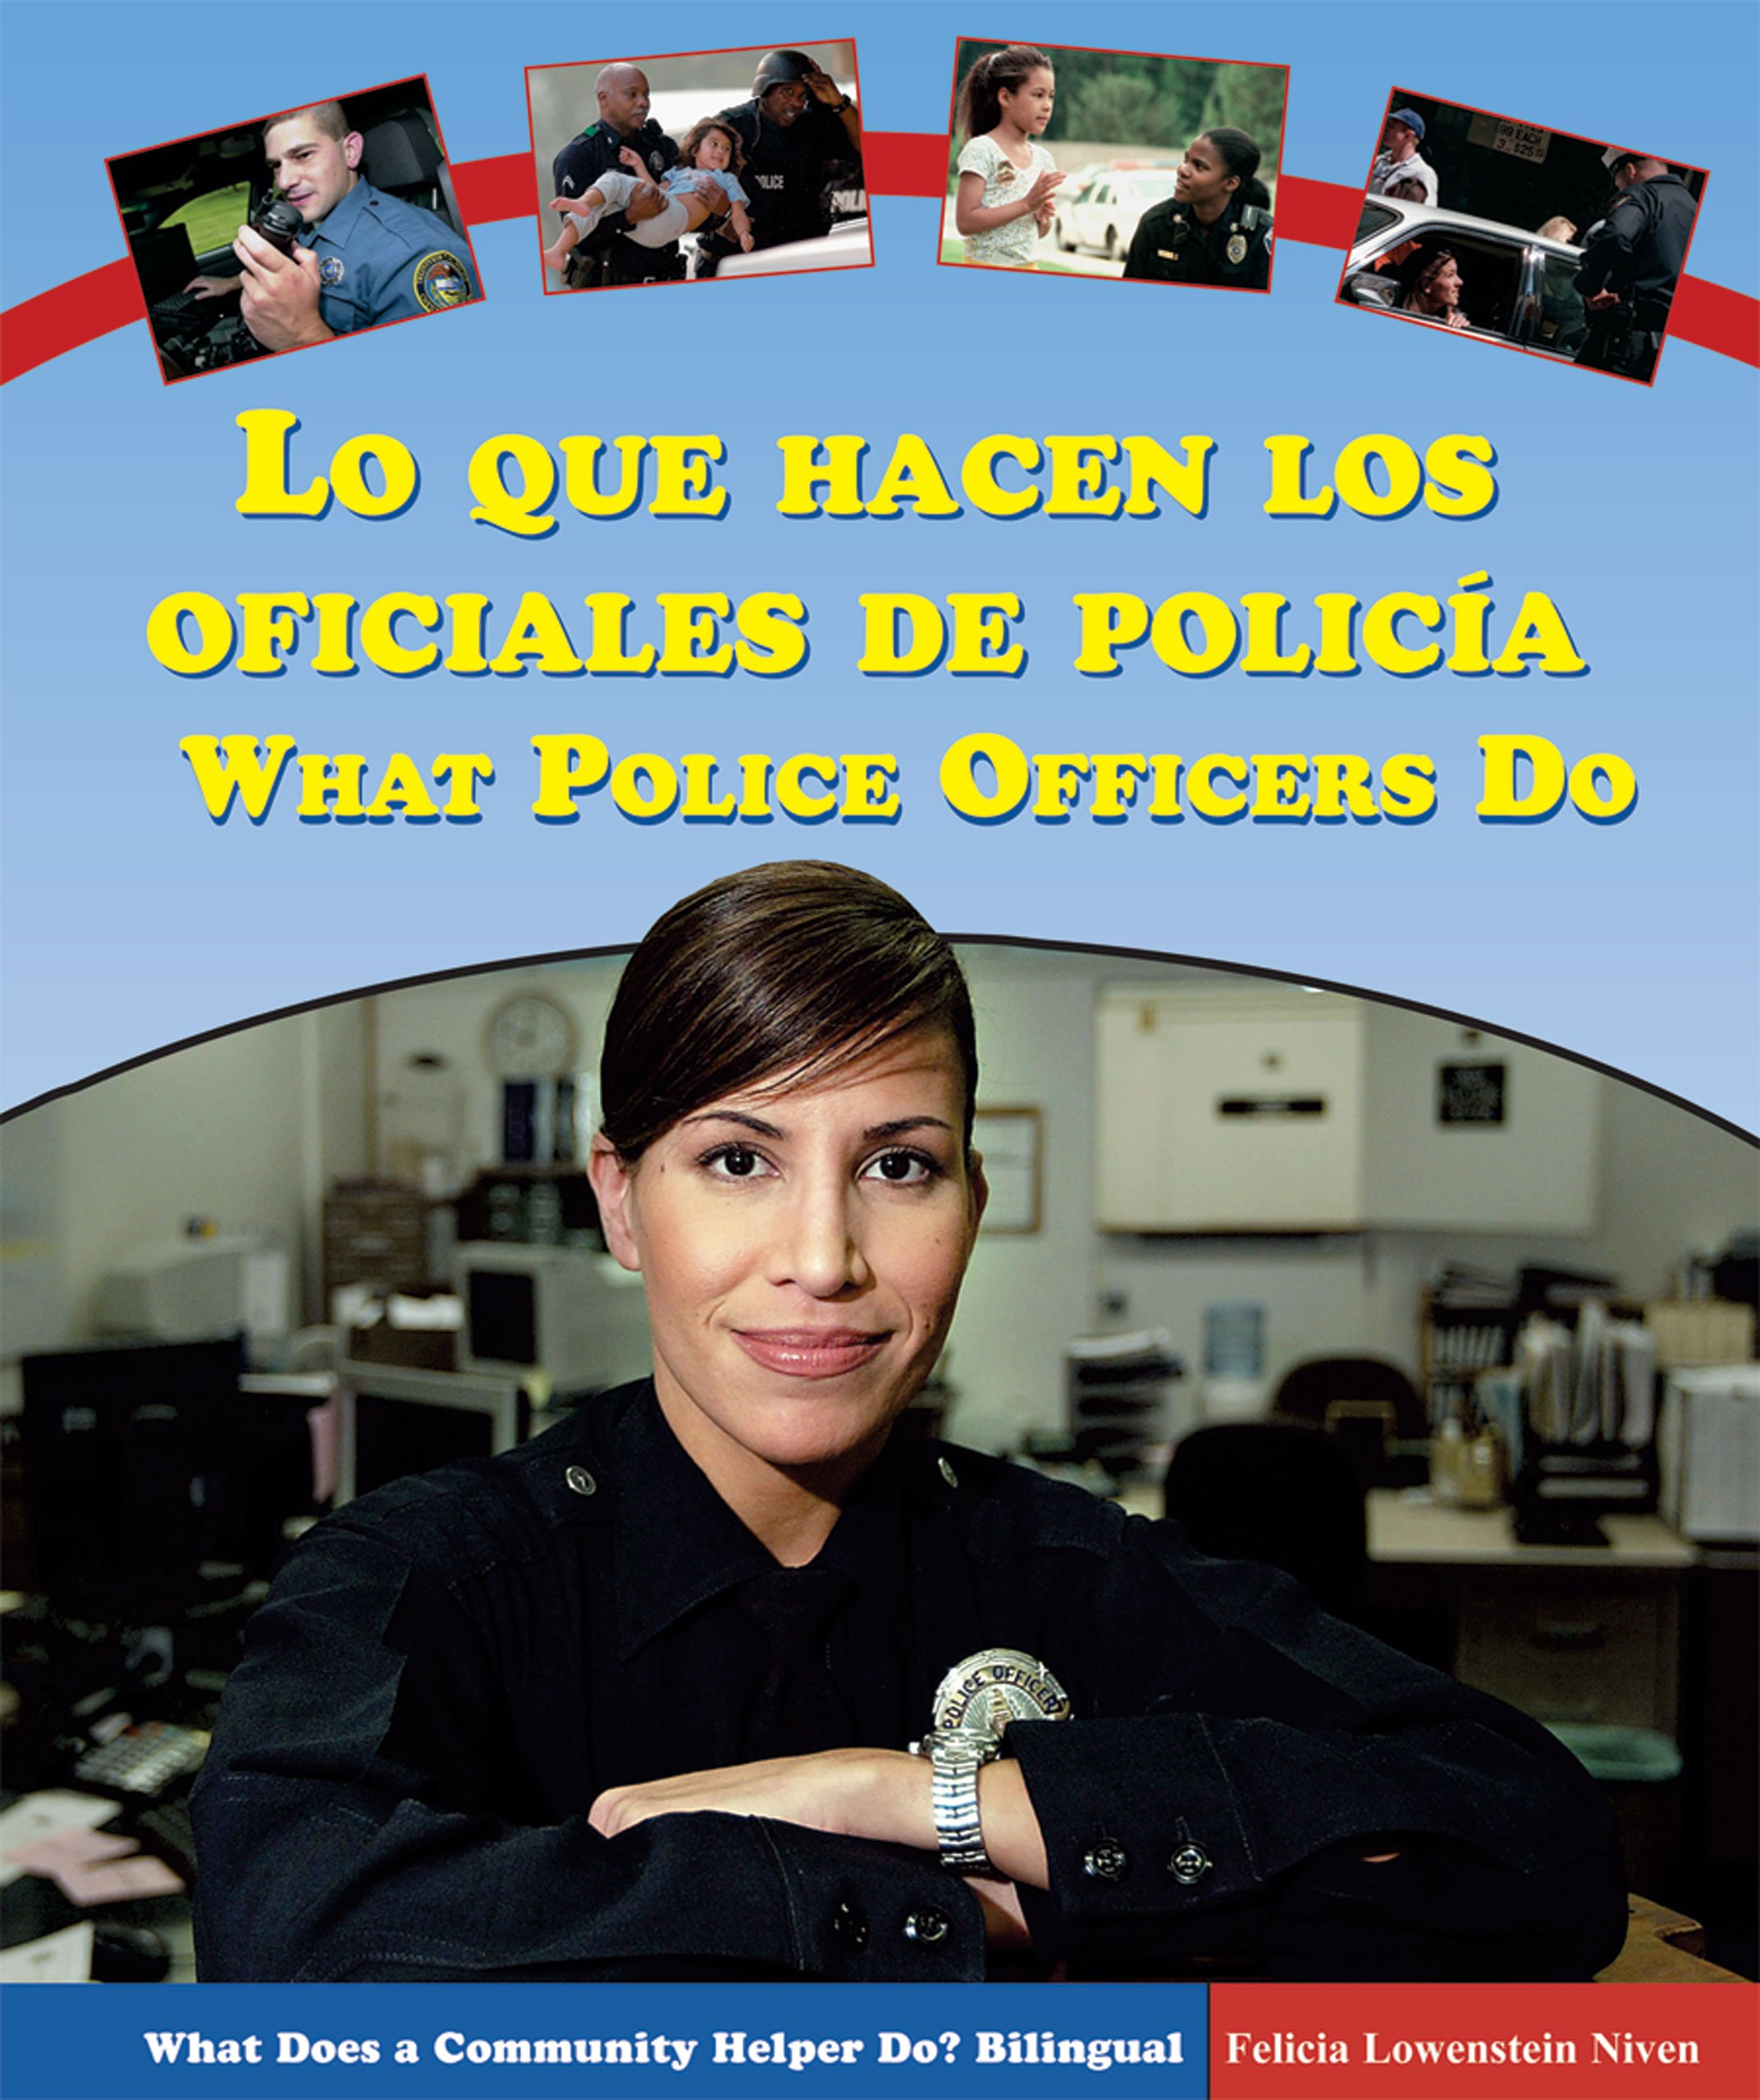 Lo Que Hacen Los Oficiales De Policia/what Police Officers Do (What Does a Community Helper Do? Bilingual) (Spanish and English Edition) ebook